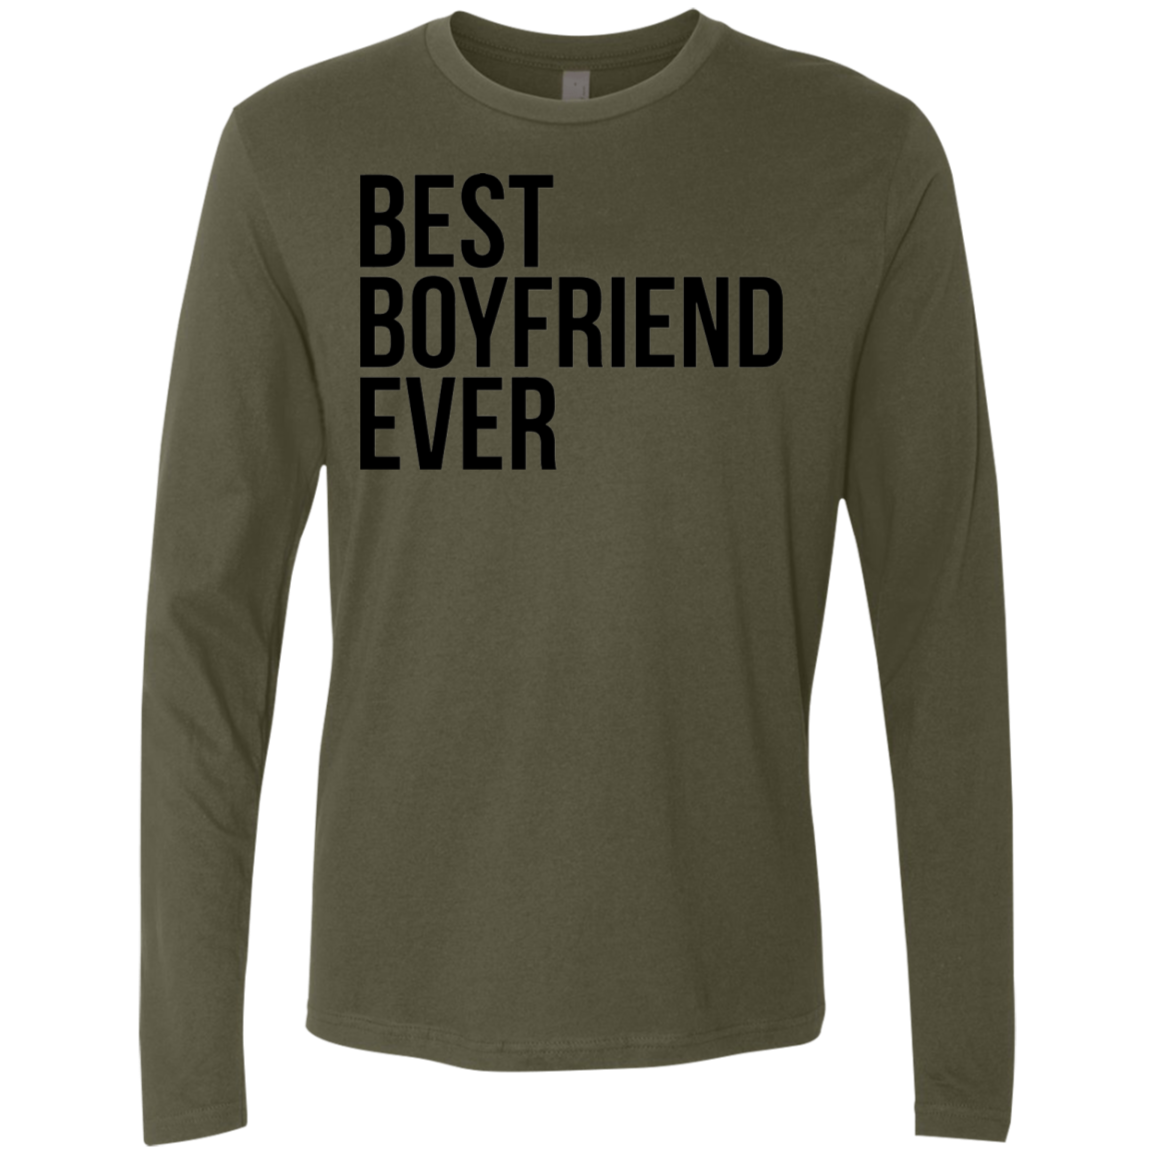 Best Boyfriend Ever Men's Long Sleeve Tee - Trendy Tees